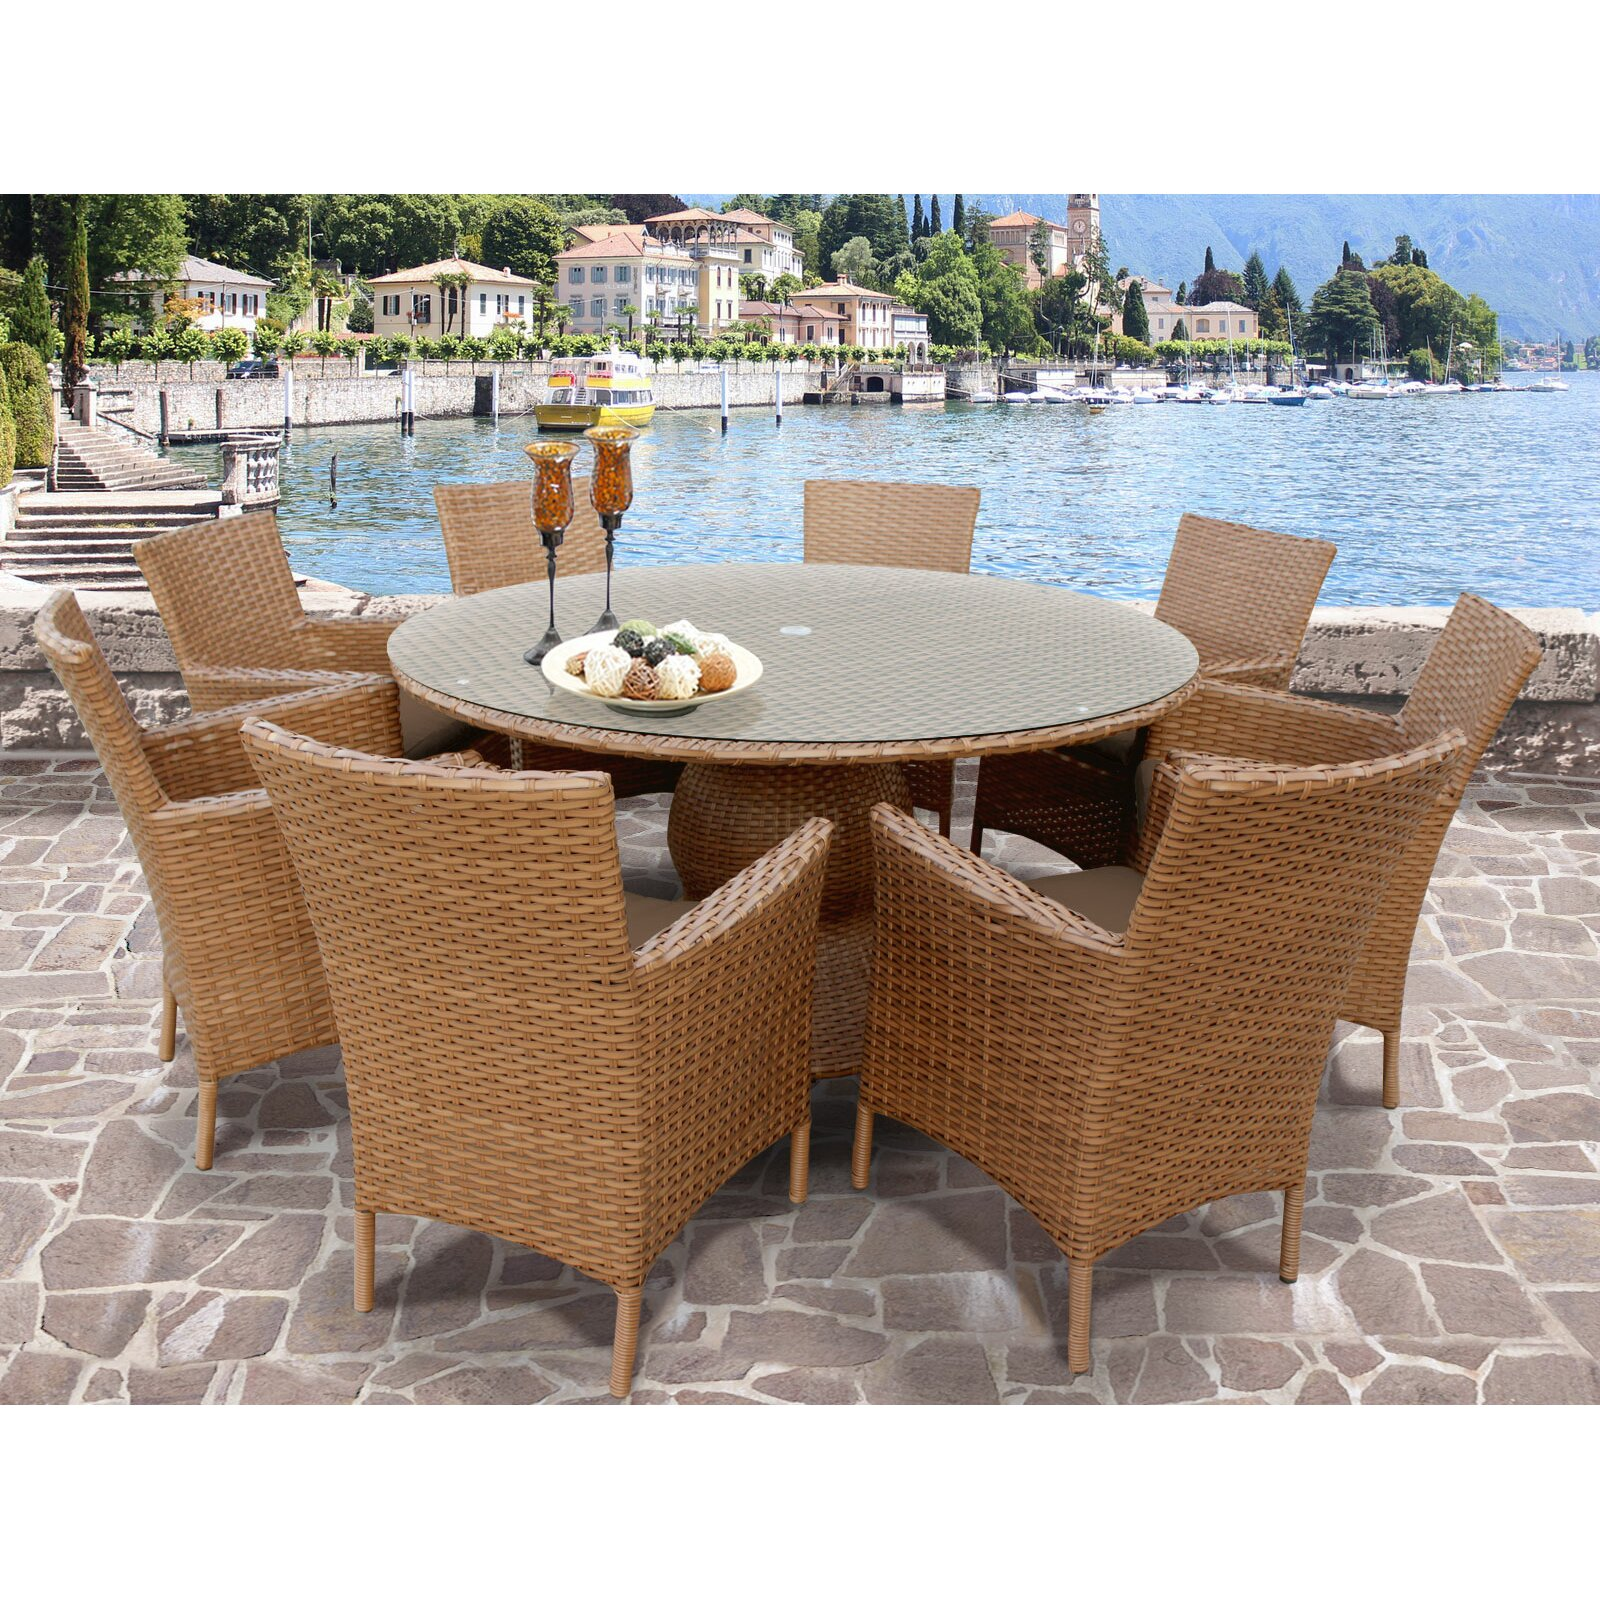 Resistant rattan effect outdoor patio dining set with round table - Laguna Patio Dining Set